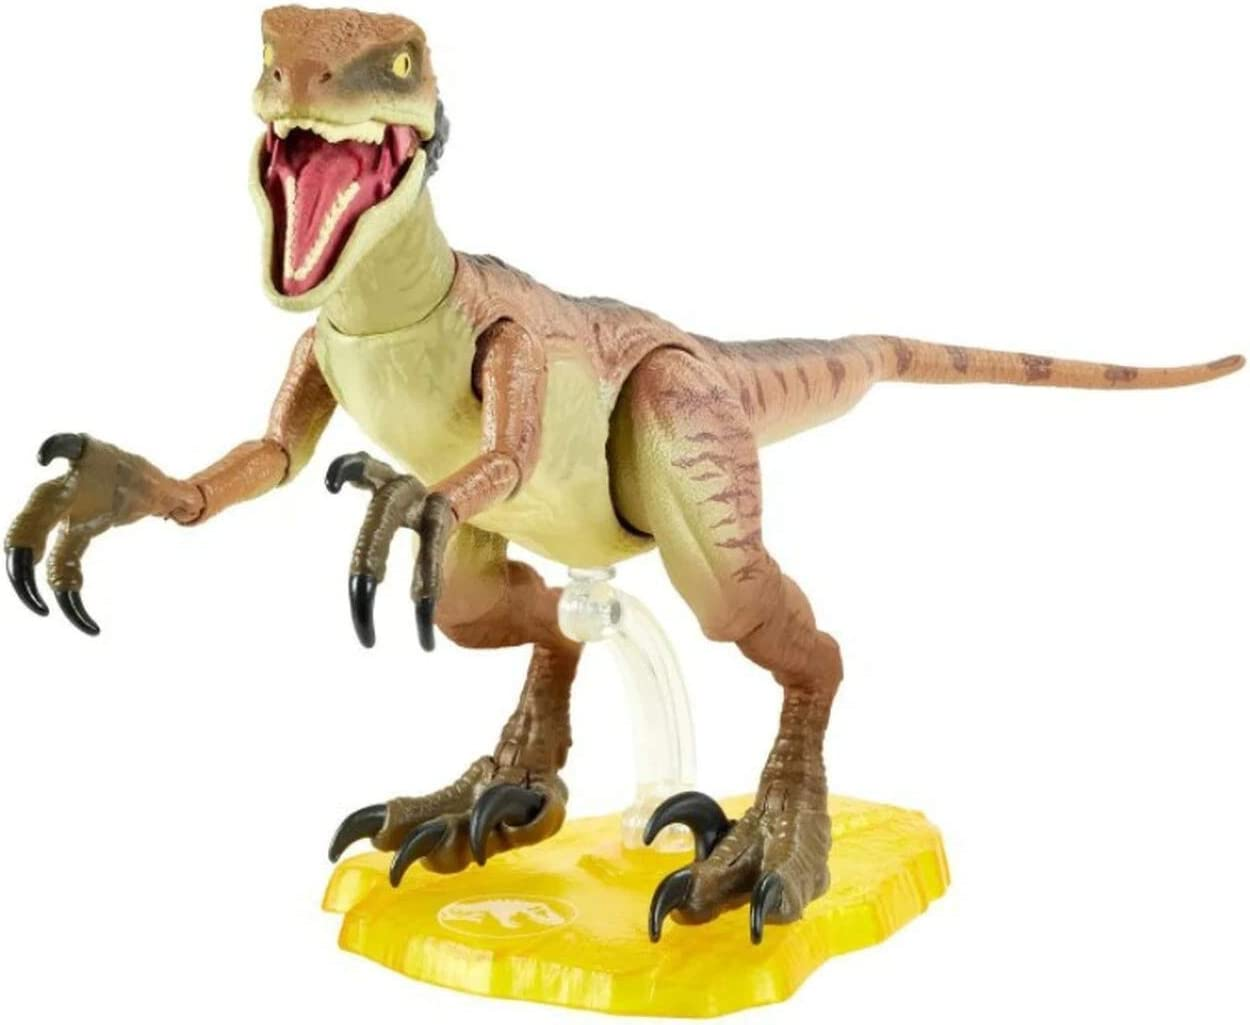 Jurassic World Velociraptor Echo 6-inches (15.24 cm) Collectible Action Figure with Movie-Authentic Detail, Movable Joints and Figure Display Stand; for Ages 8 and Up